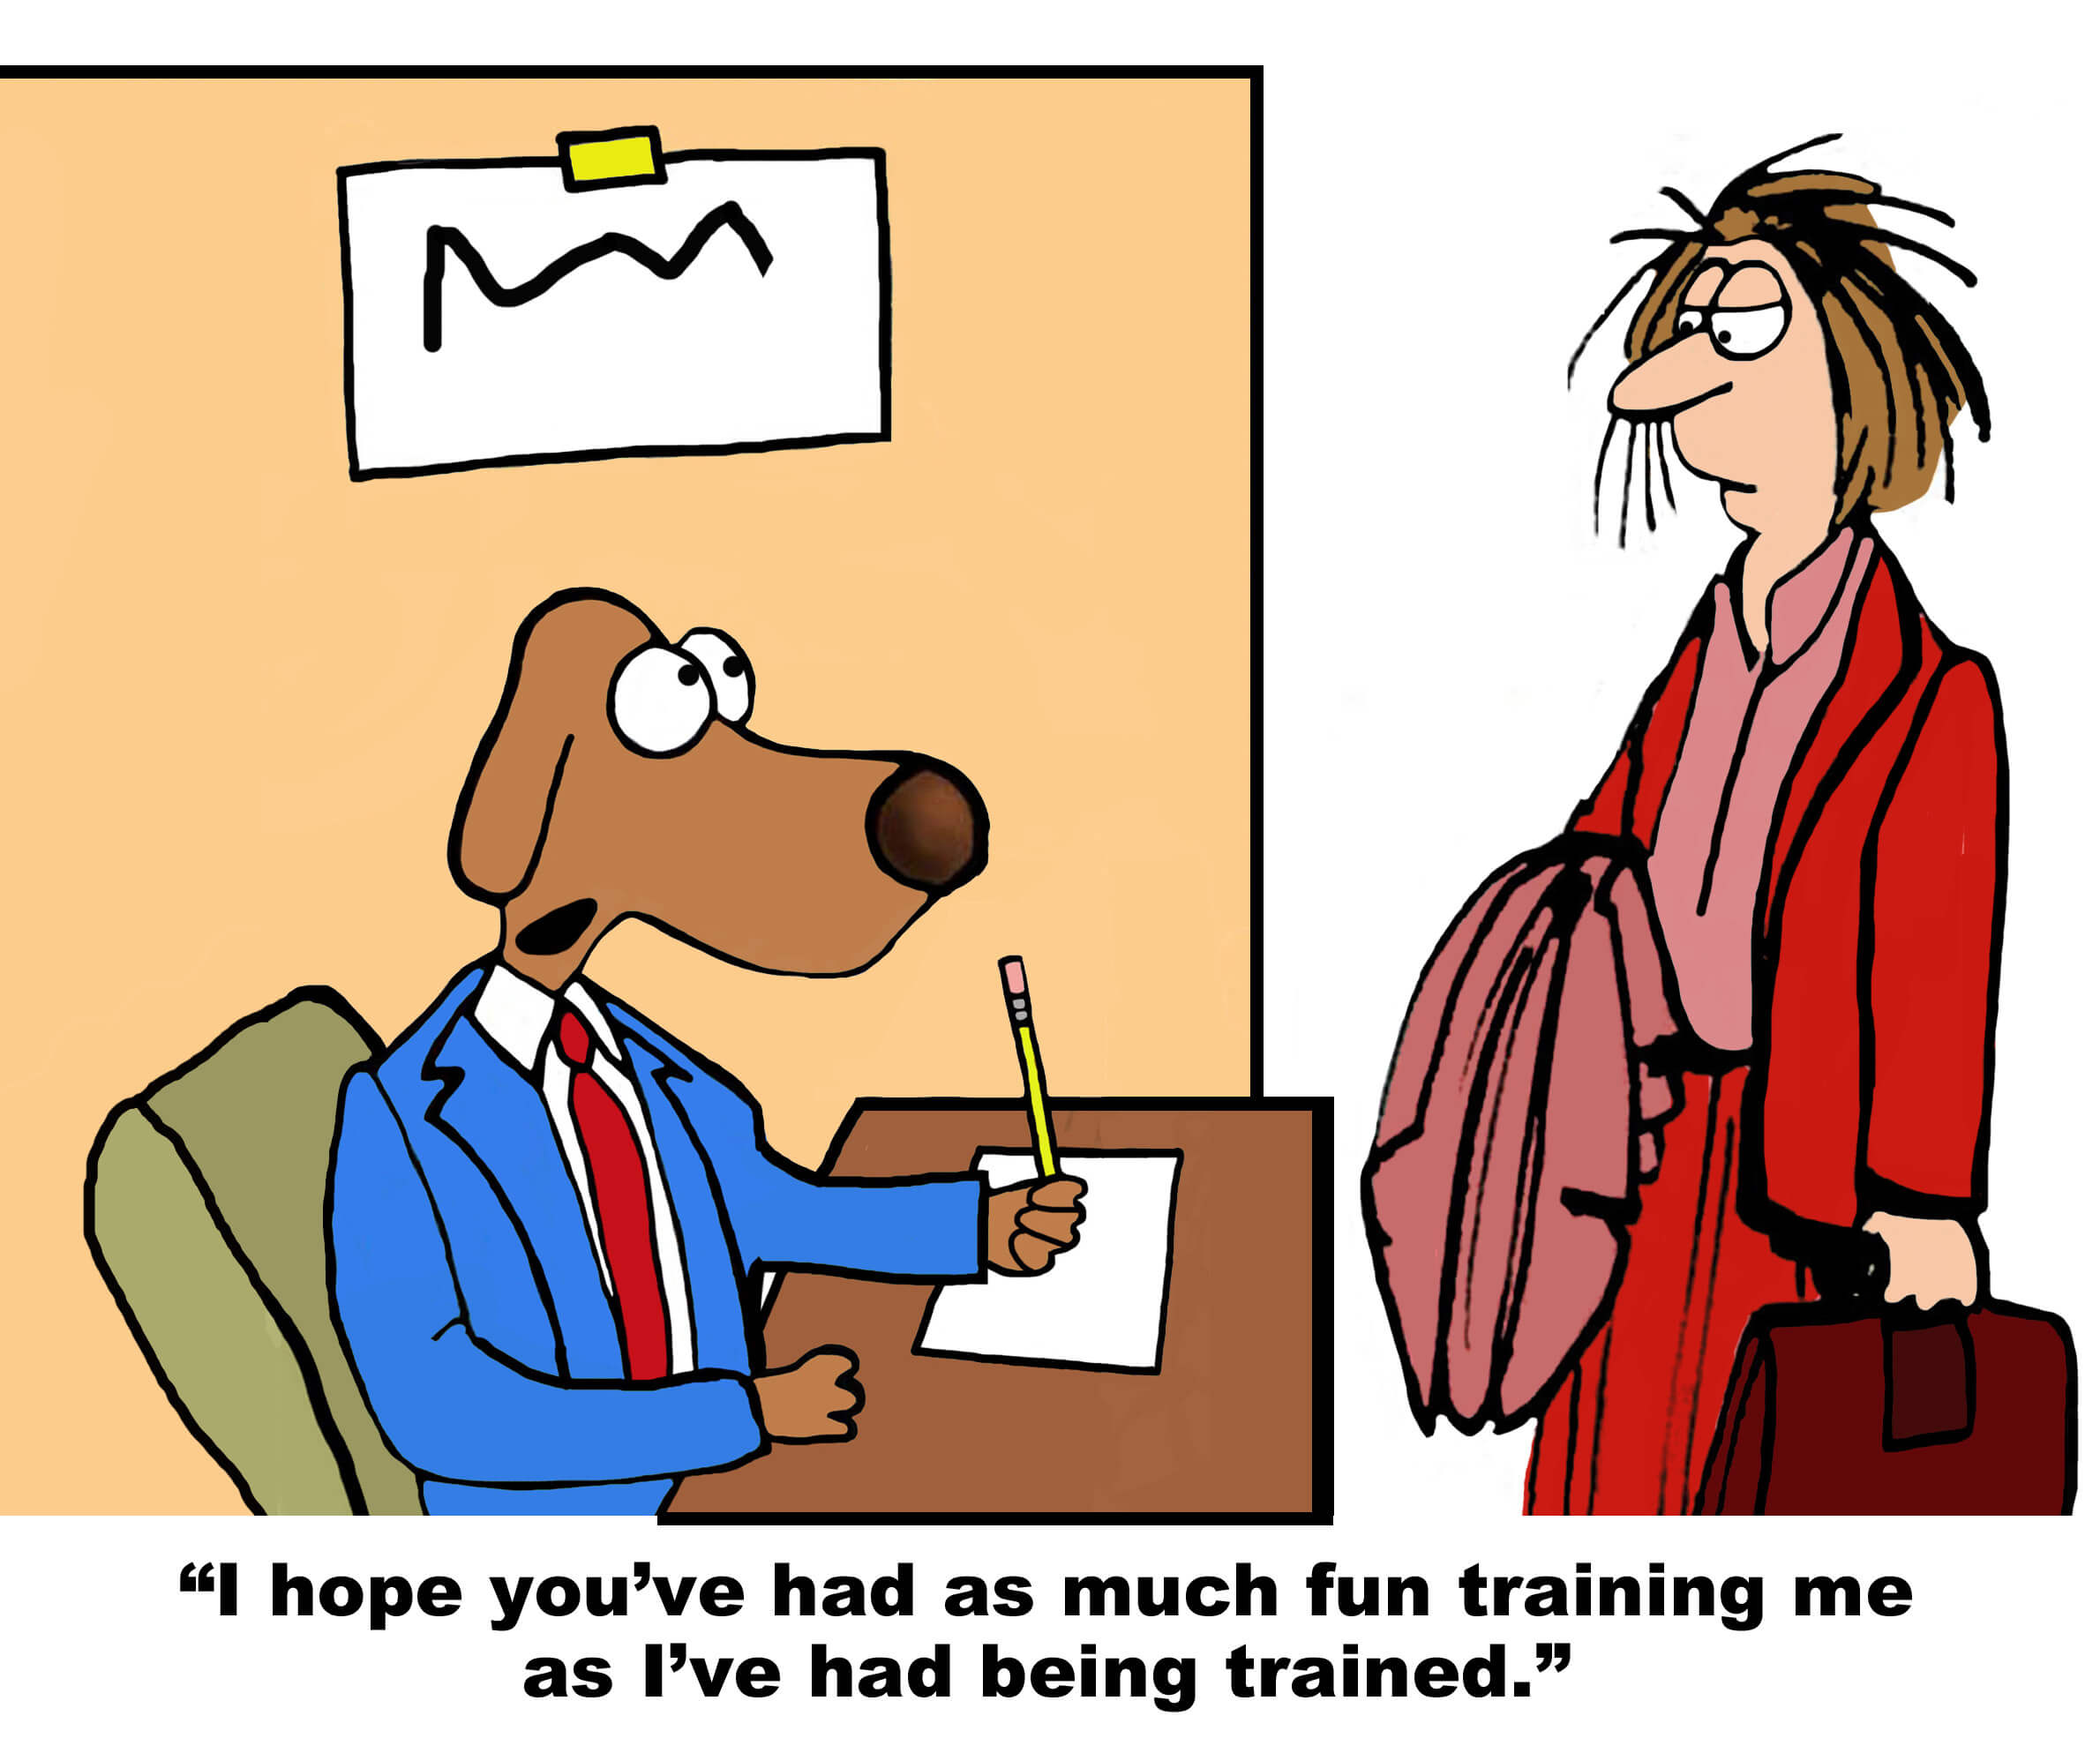 Business cartoon showing dog and disheveled businesswoman, dog says to her, 'I hope you've had as much fun training me as I've had being trained'.